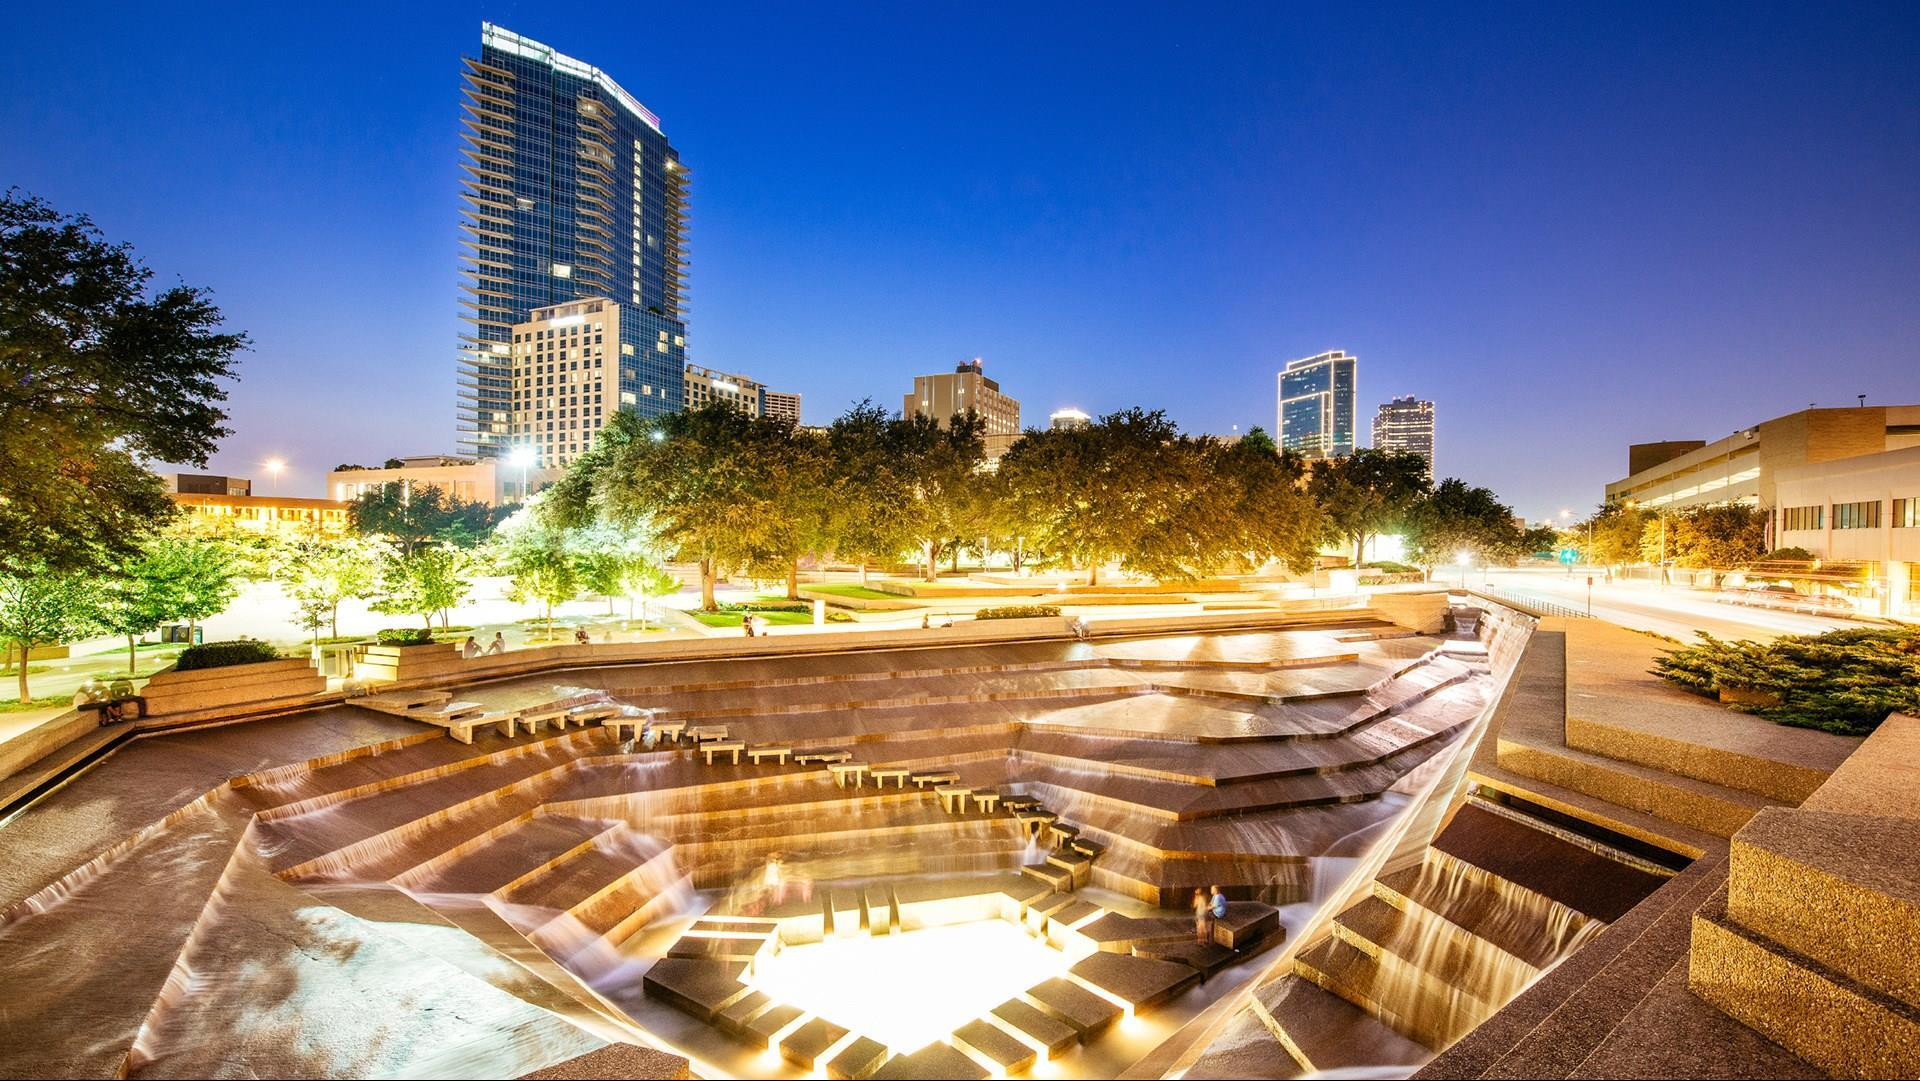 Omni Fort Worth as seen from the Fort Worth Water Gardens.